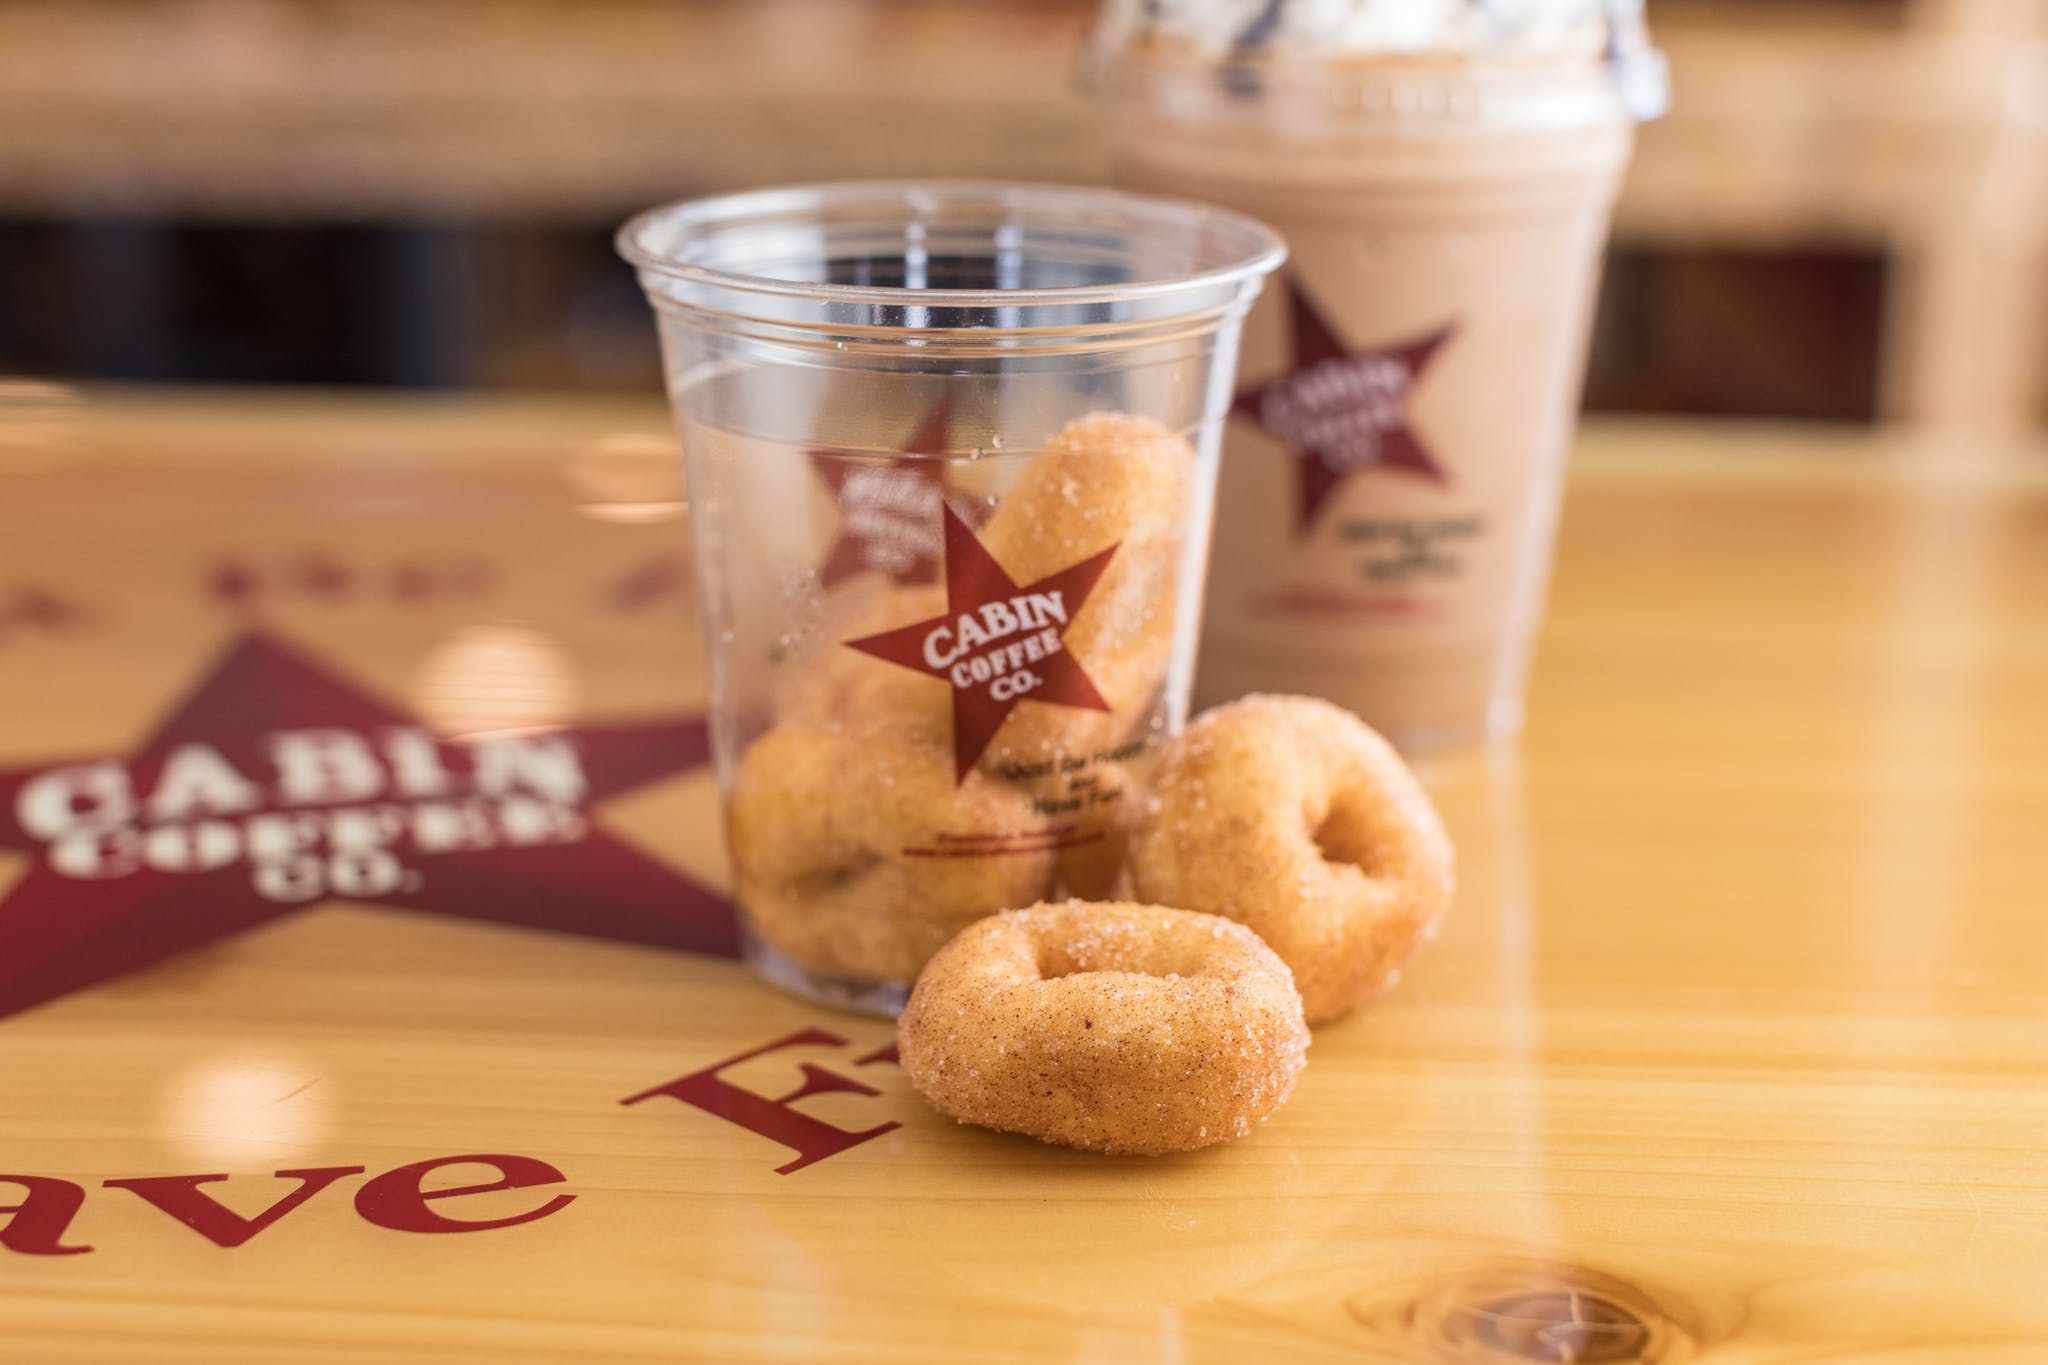 Mini Donuts from Cabin Coffee Co. in Altoona, WI